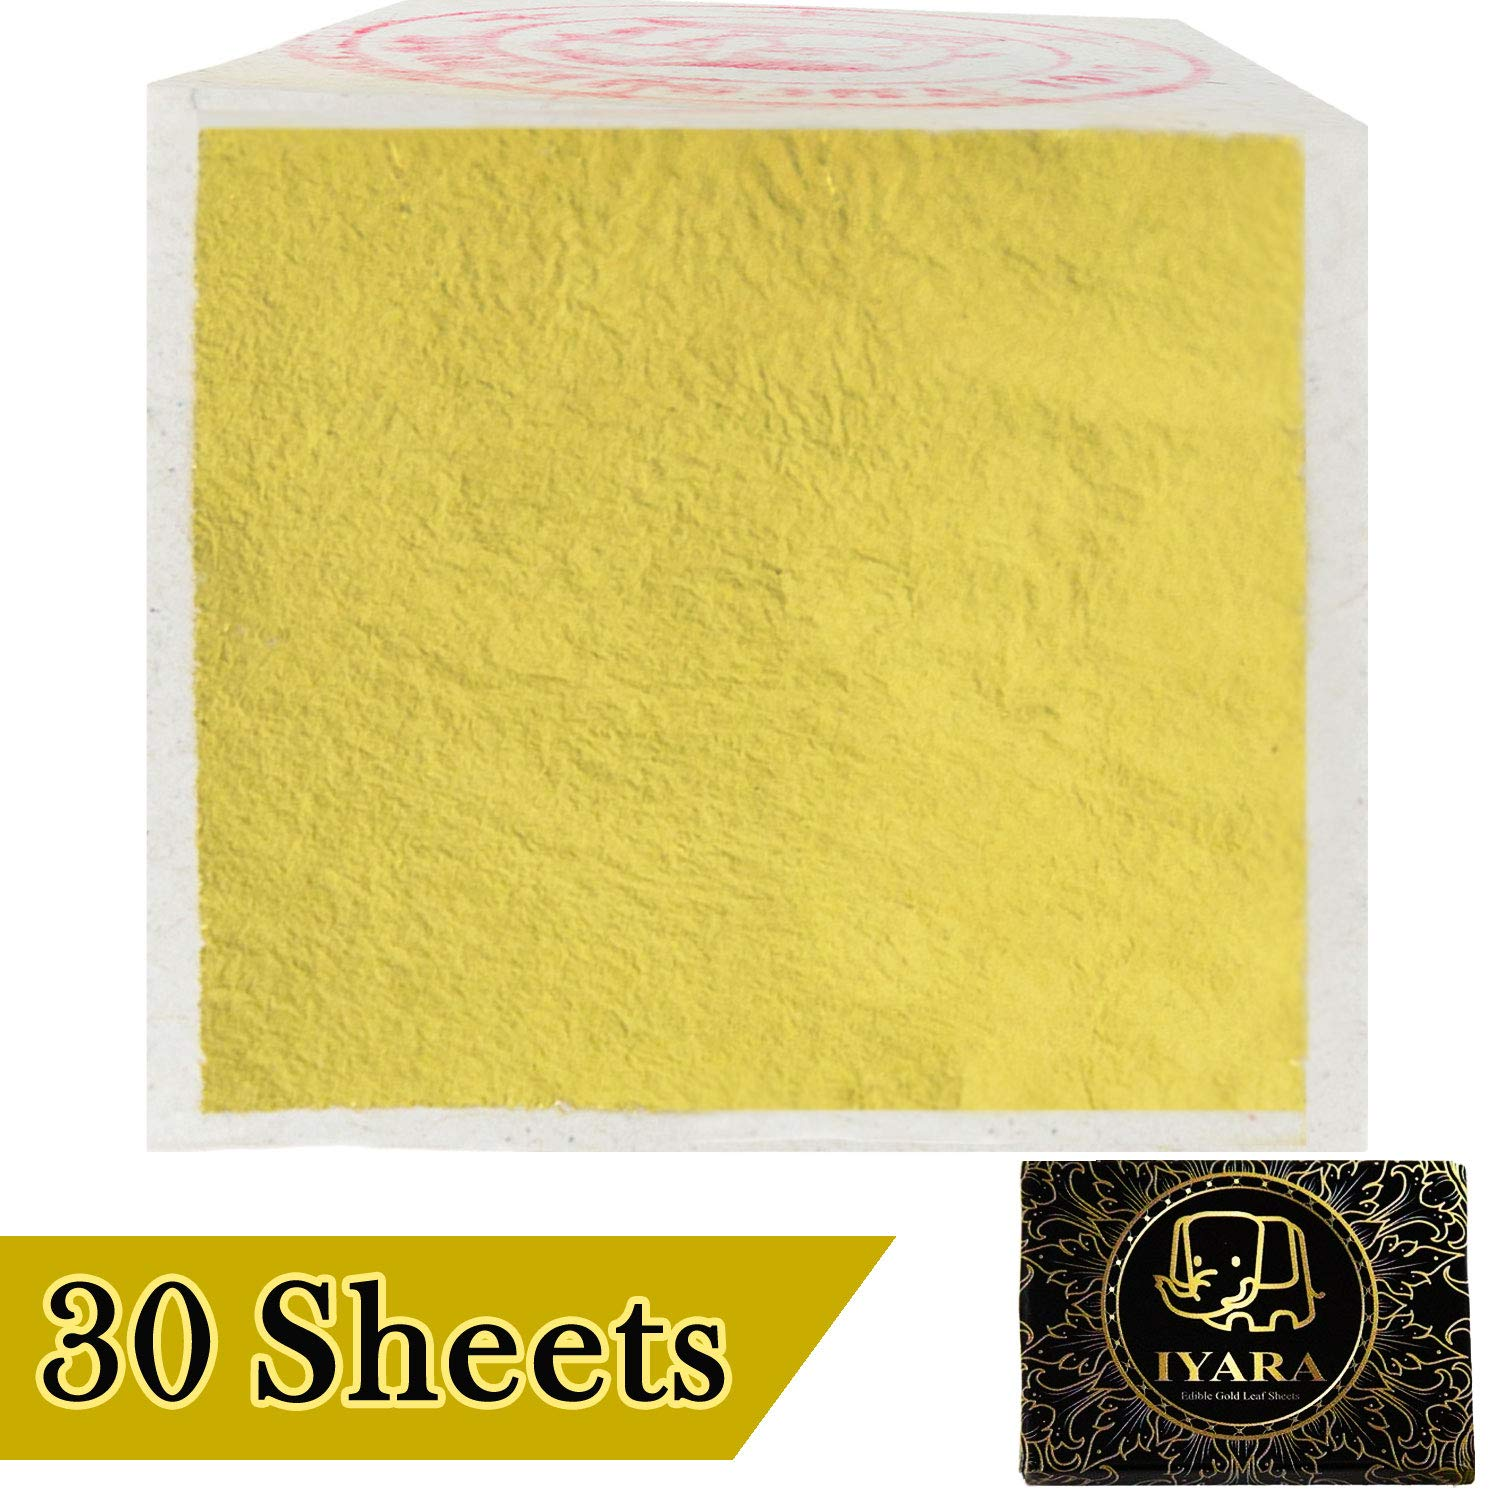 IYARA 30 Edible Leaf Sheets - Multipurpose 24 Karat Yellow Gold Leaves for Food and Cake Decoration, Spa Anti-Wrinkle Face Masks, Art, Crafts, Gilding, Restoration, DIY Projects (1.2'' x 1.2''),